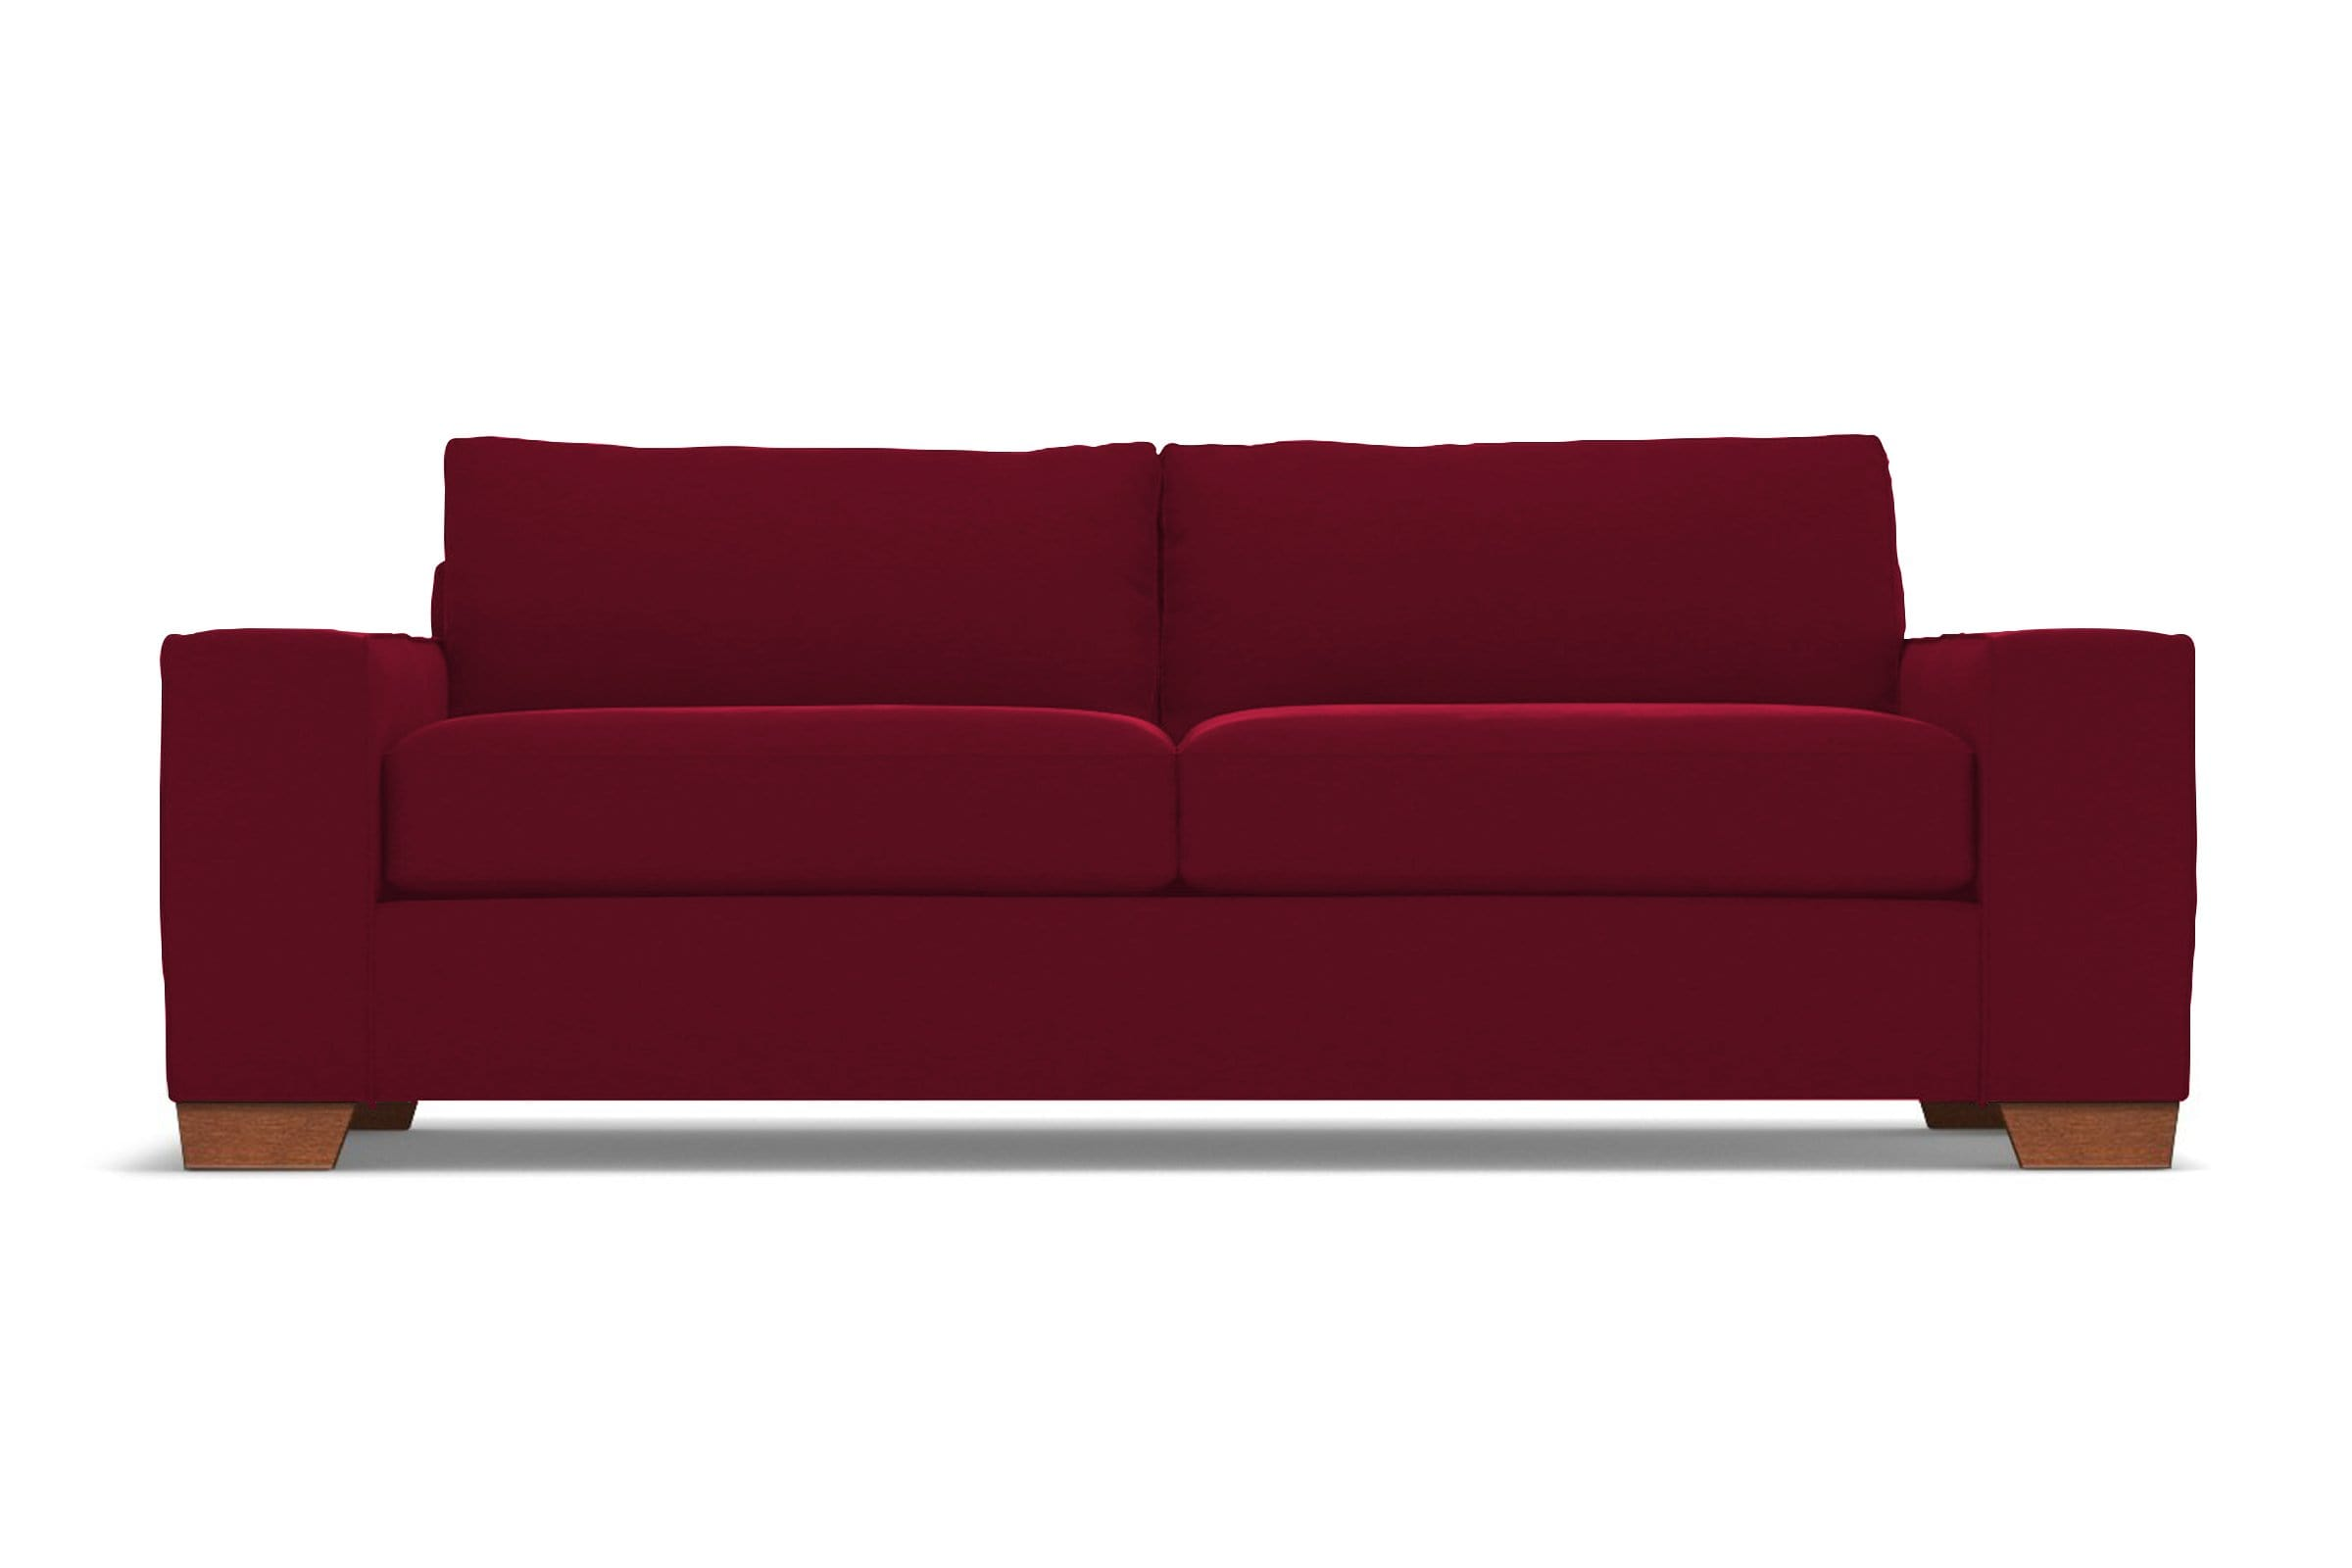 Melrose Sofa - Red Velvet - Modern Couch Made in the USA - Sold by Apt2B